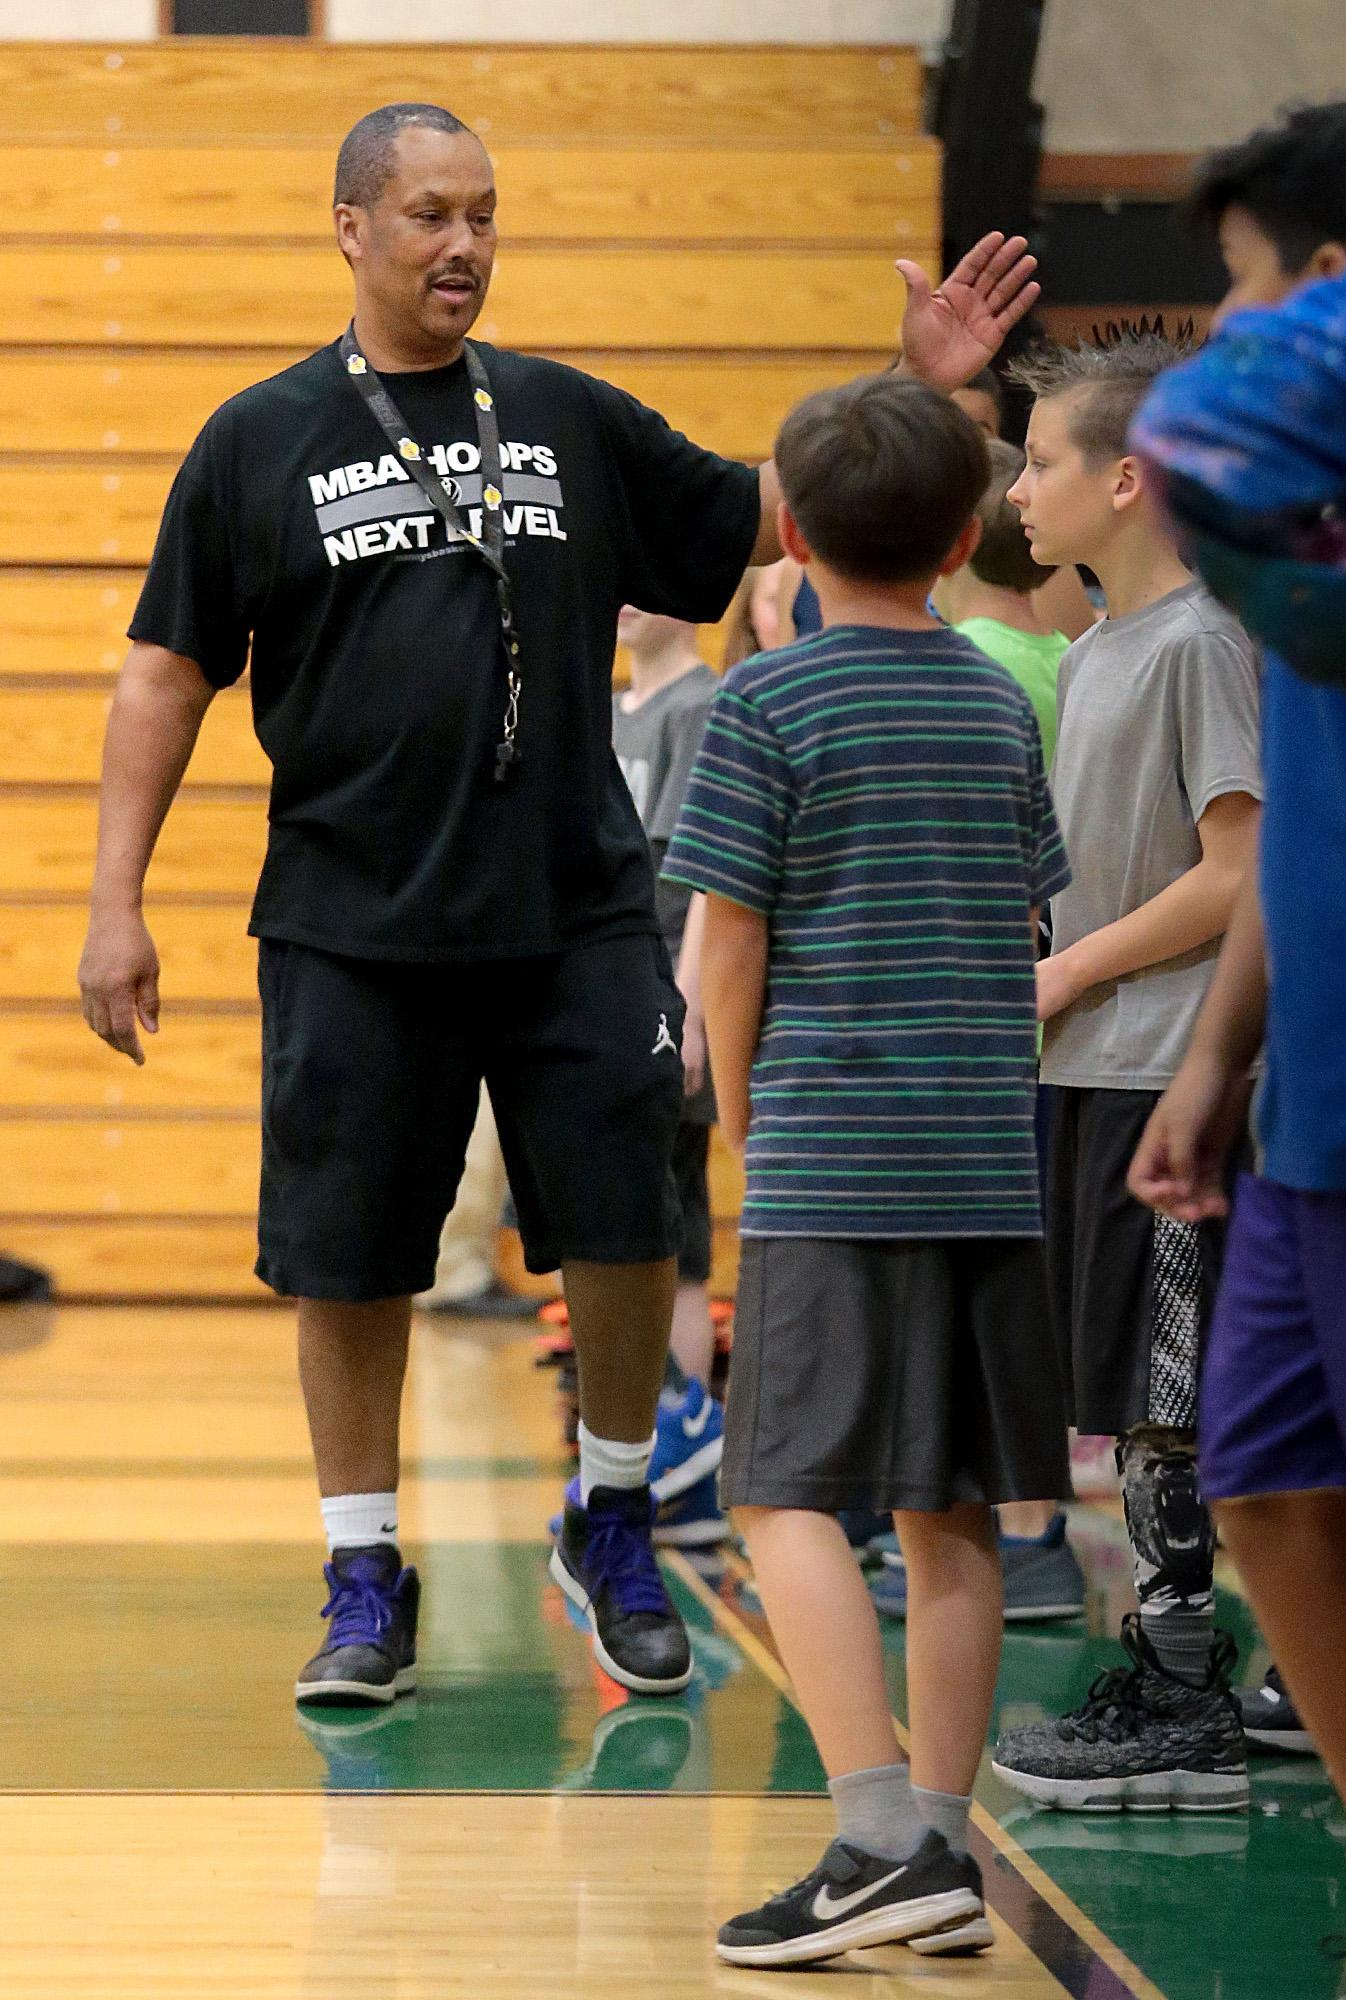 Manny Crump, working with kids during an MBA Hoops session at Central High gym on Wednesday.[PHOTO BY:  LARRY STAUTH JR]